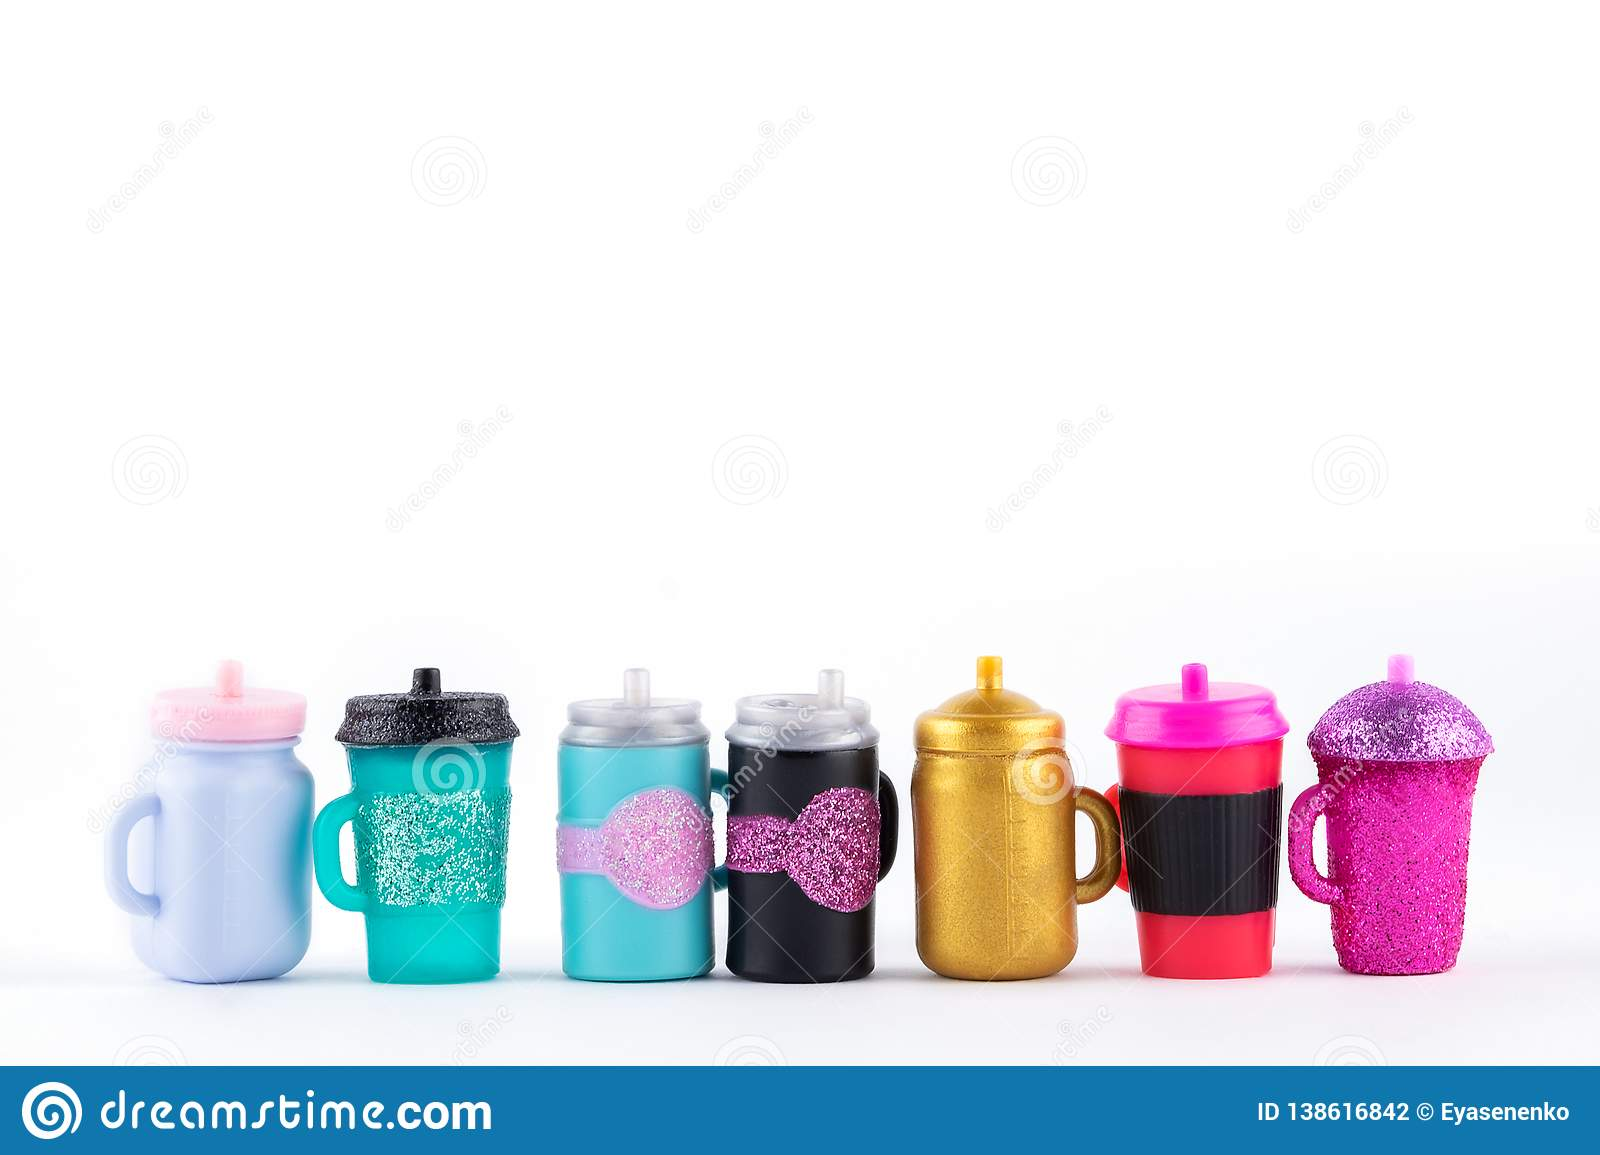 Many mug with a straw for drinking